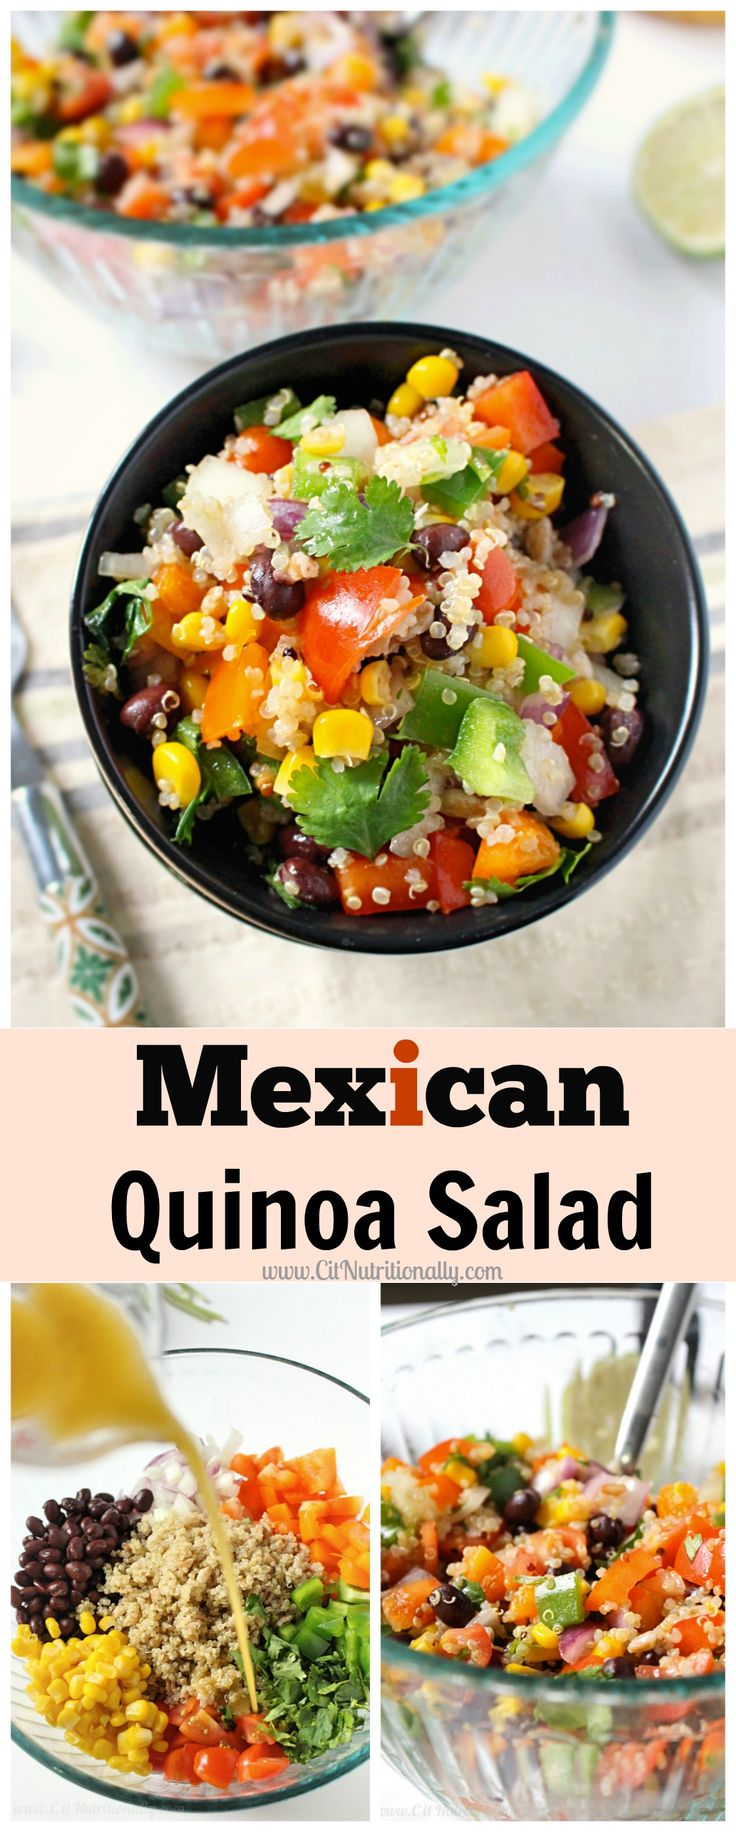 Mexican Quinoa Salad | An easy & nutritious lunch packed with plant-based protein! Plus, it's gluten free! | C it Nutritionally